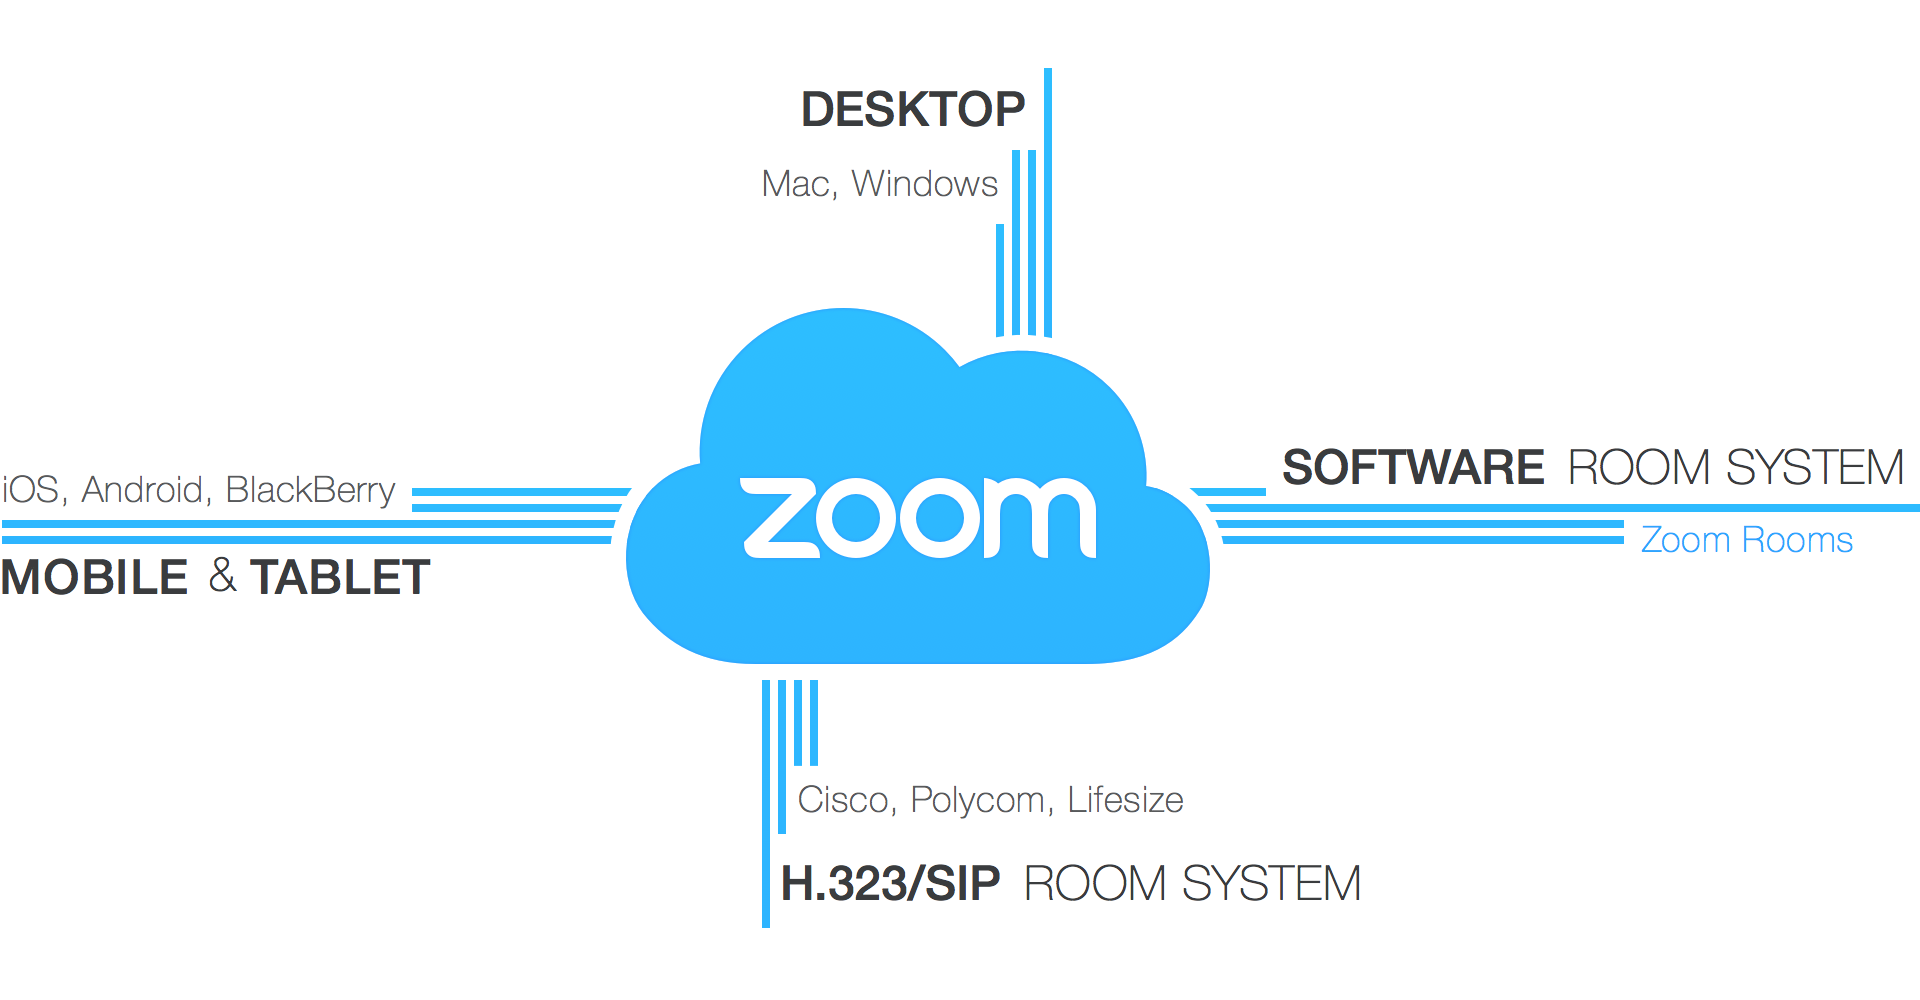 ZoomThis site is used for video conferencing. It allows